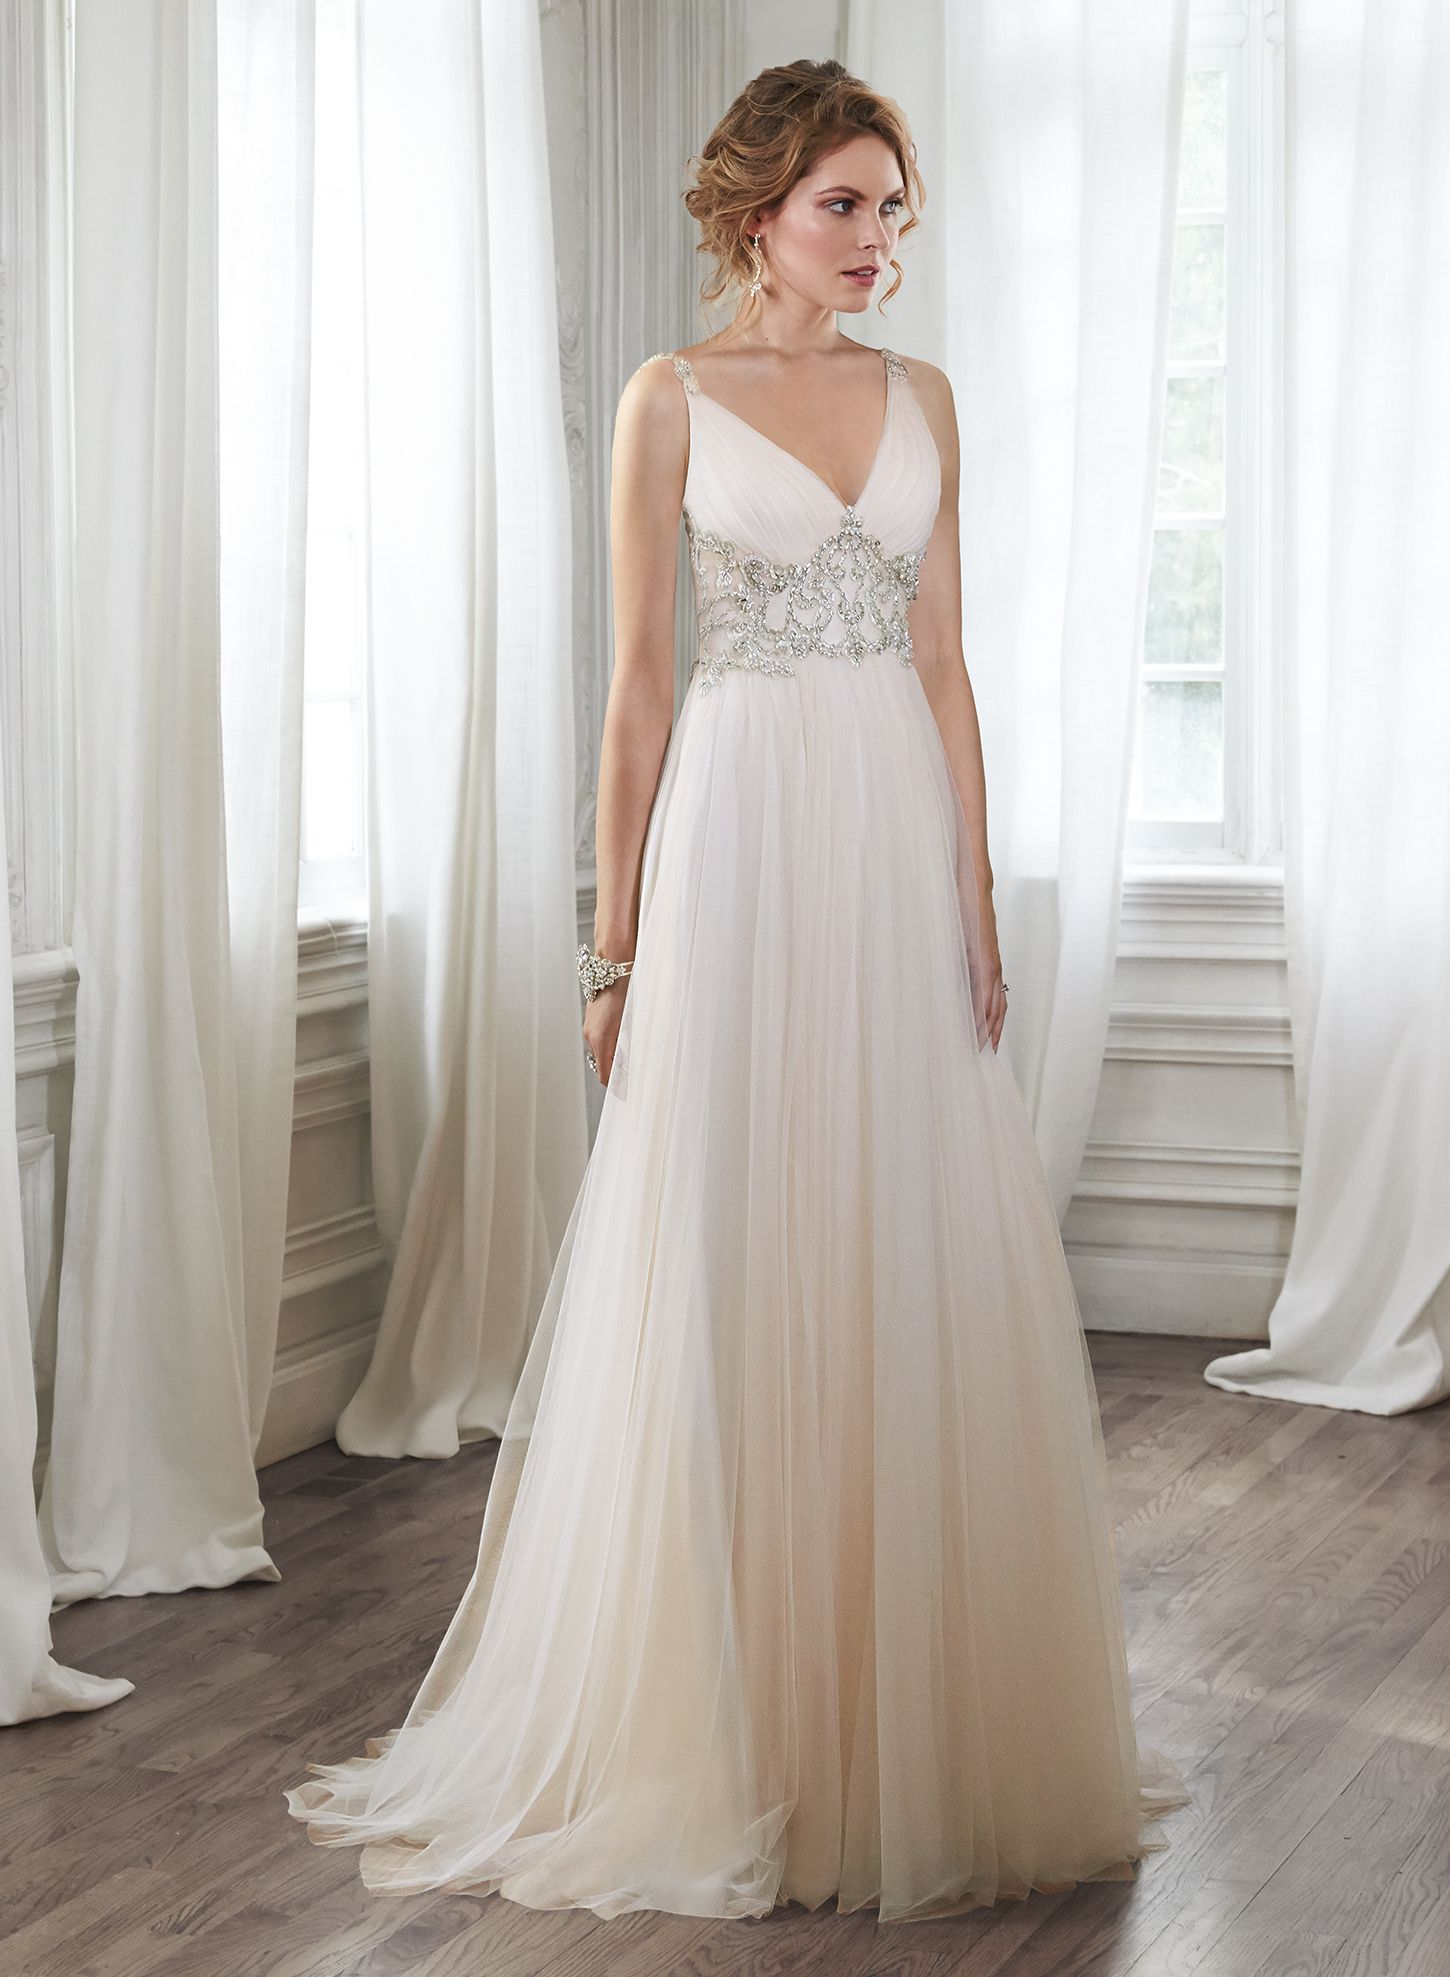 eb4f3120 I love this dress, but I'm really pinning this so that I remember the  designer more than anything - Phyllis - by Maggie Sottero